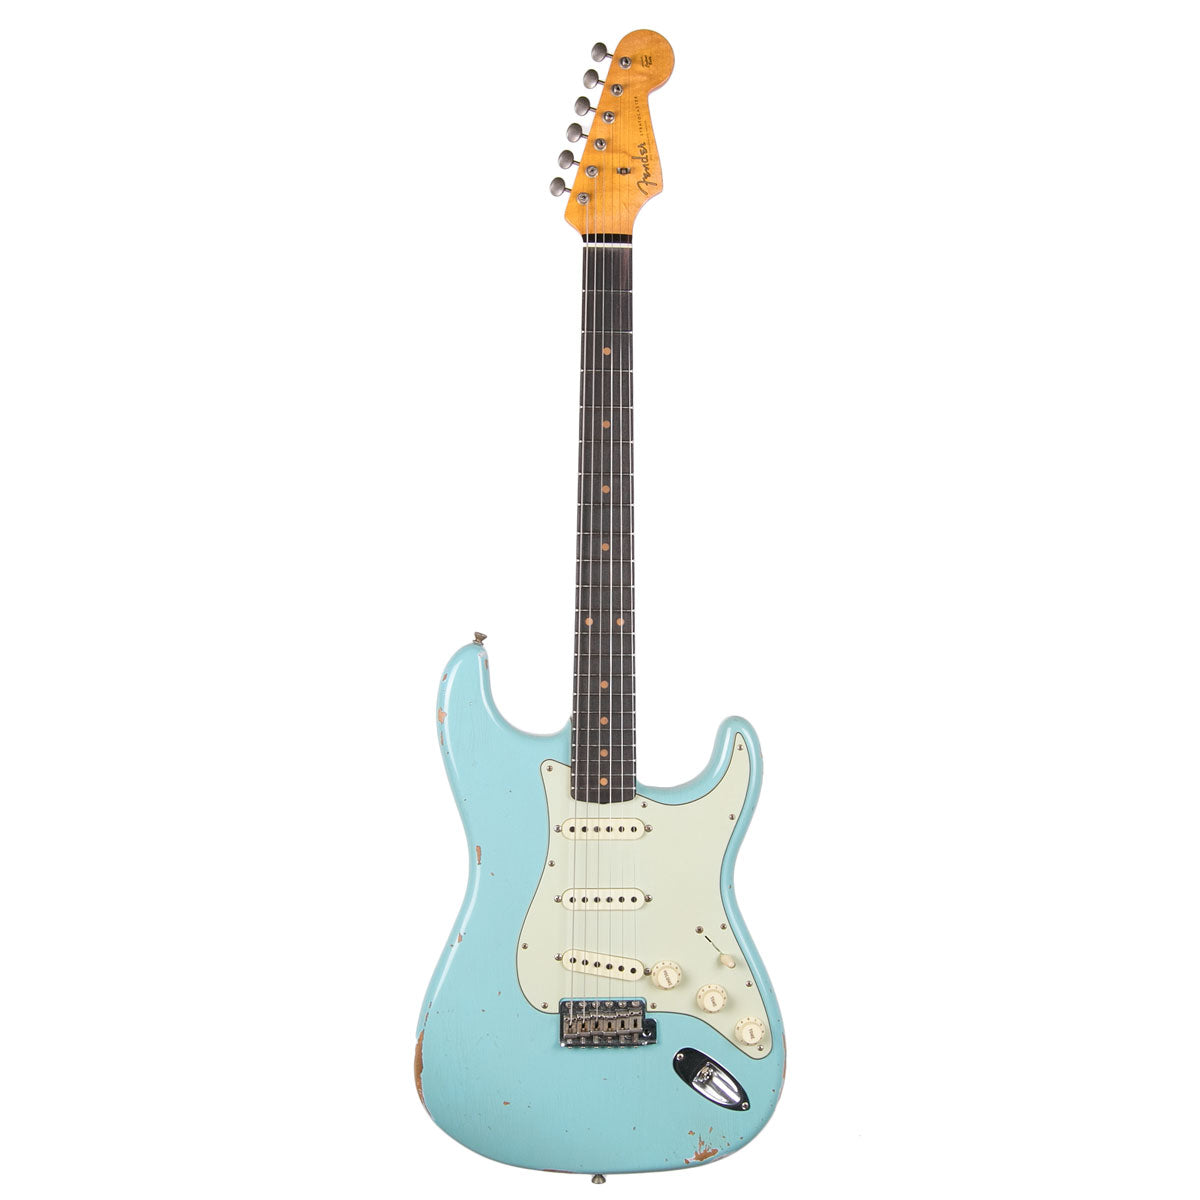 Fender Custom Shop 1960 Relic Stratocaster Aged Daphne Blue | Lucky Fret Music Co.